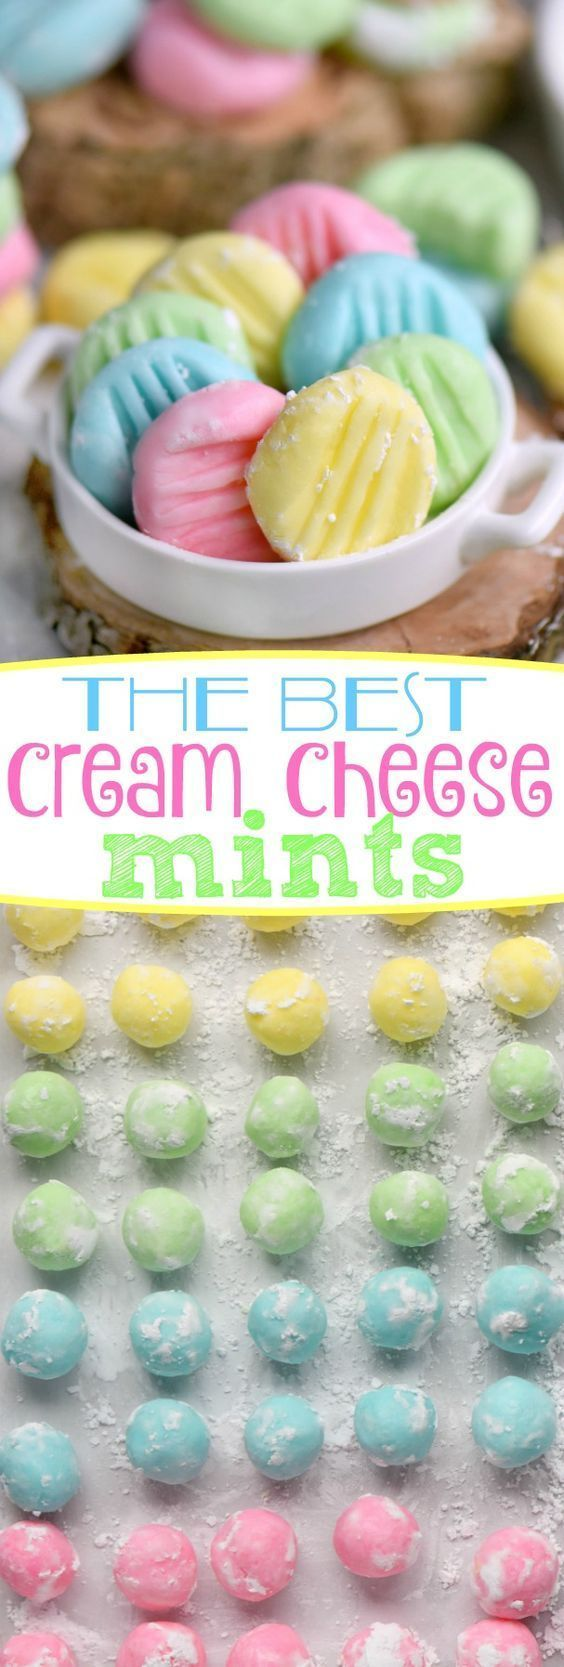 The BEST Cream Cheese Mints you'll ever try! This incredibly easy recipe yields the most delicious, luscious, melt-in-your-mouth cream cheese mints around! Make them in any color you like! Perfect for Easter, baby showers, weddings, and more! // Mom On Timeout #DesertsFoodRecipes